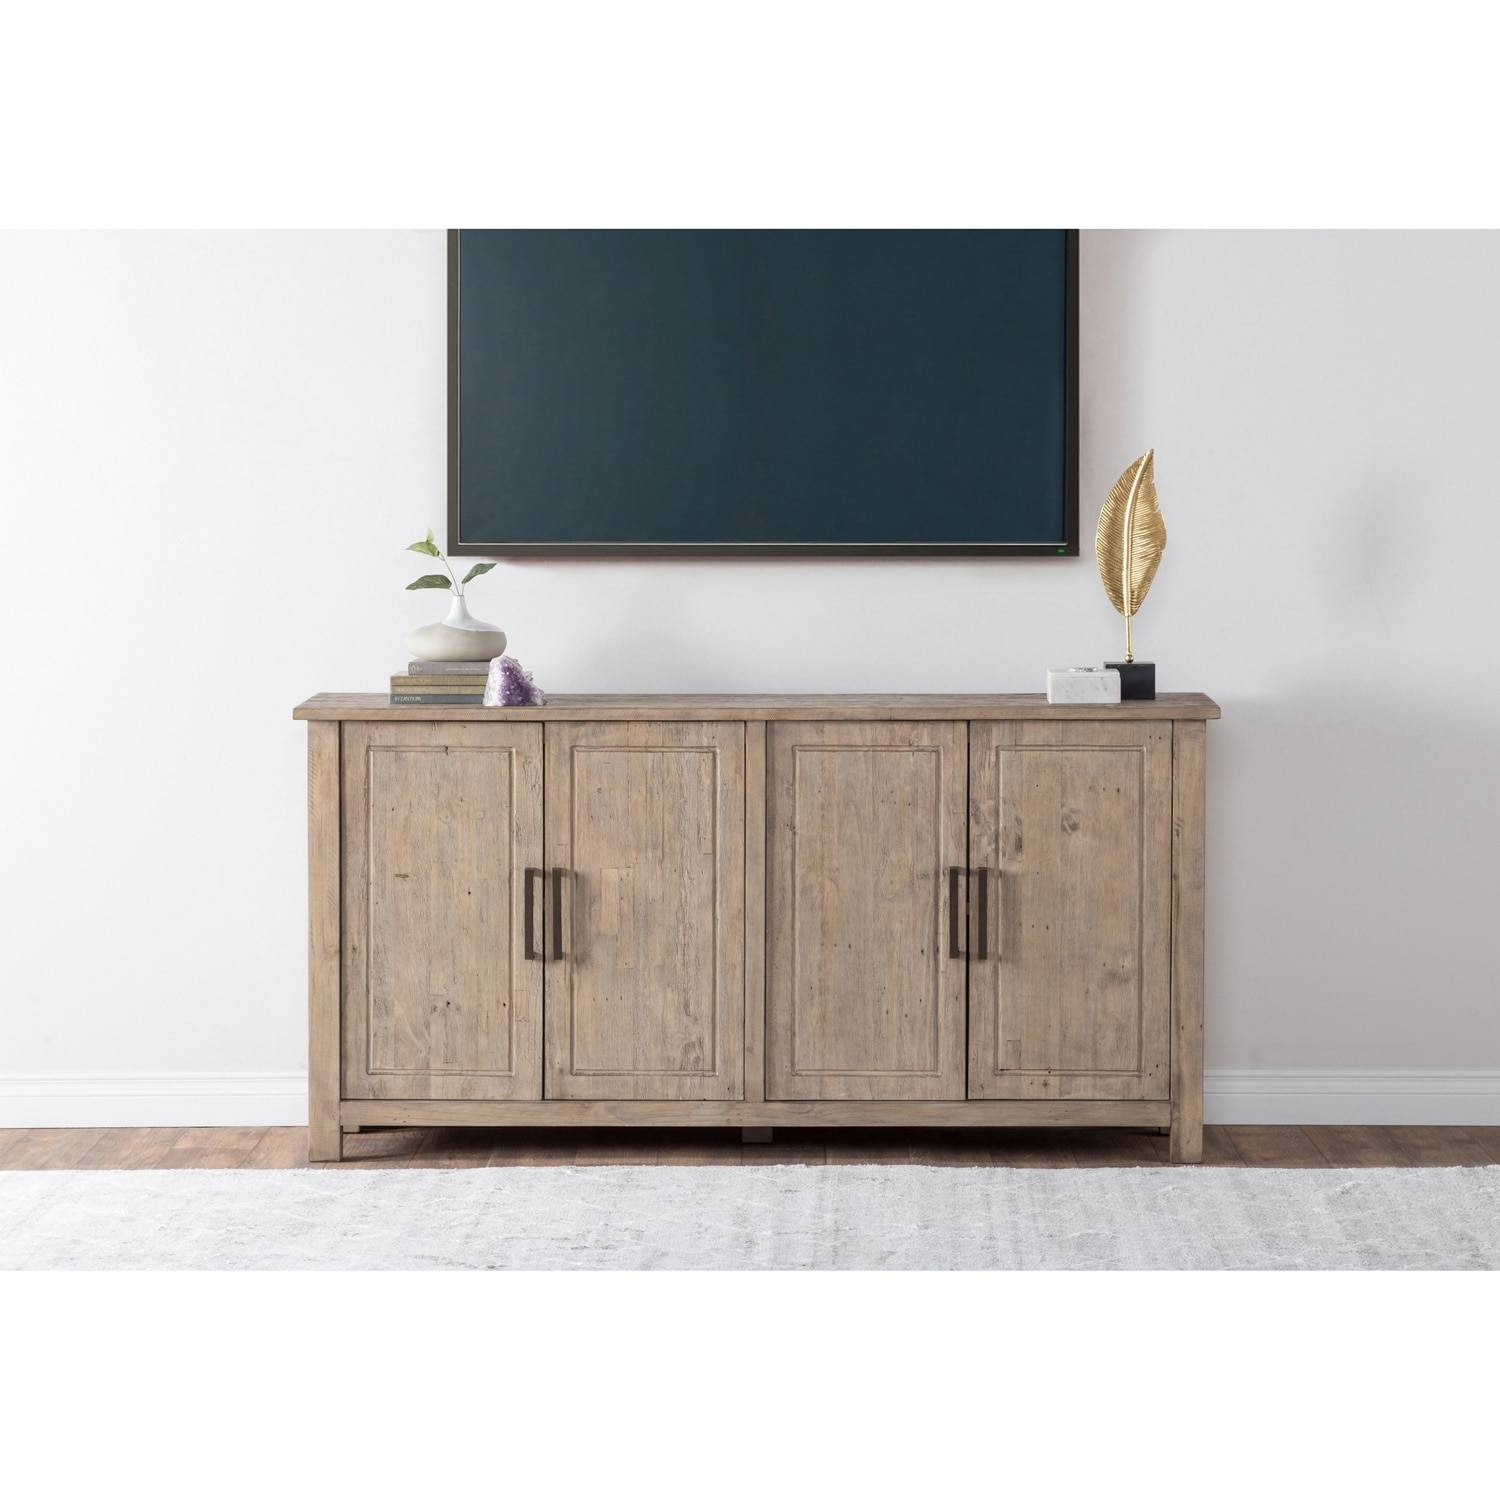 Aires Reclaimed Wood 72 Inch Sideboardkosas Home – Free Throughout Most Current 72 Inch Sideboards (#2 of 15)